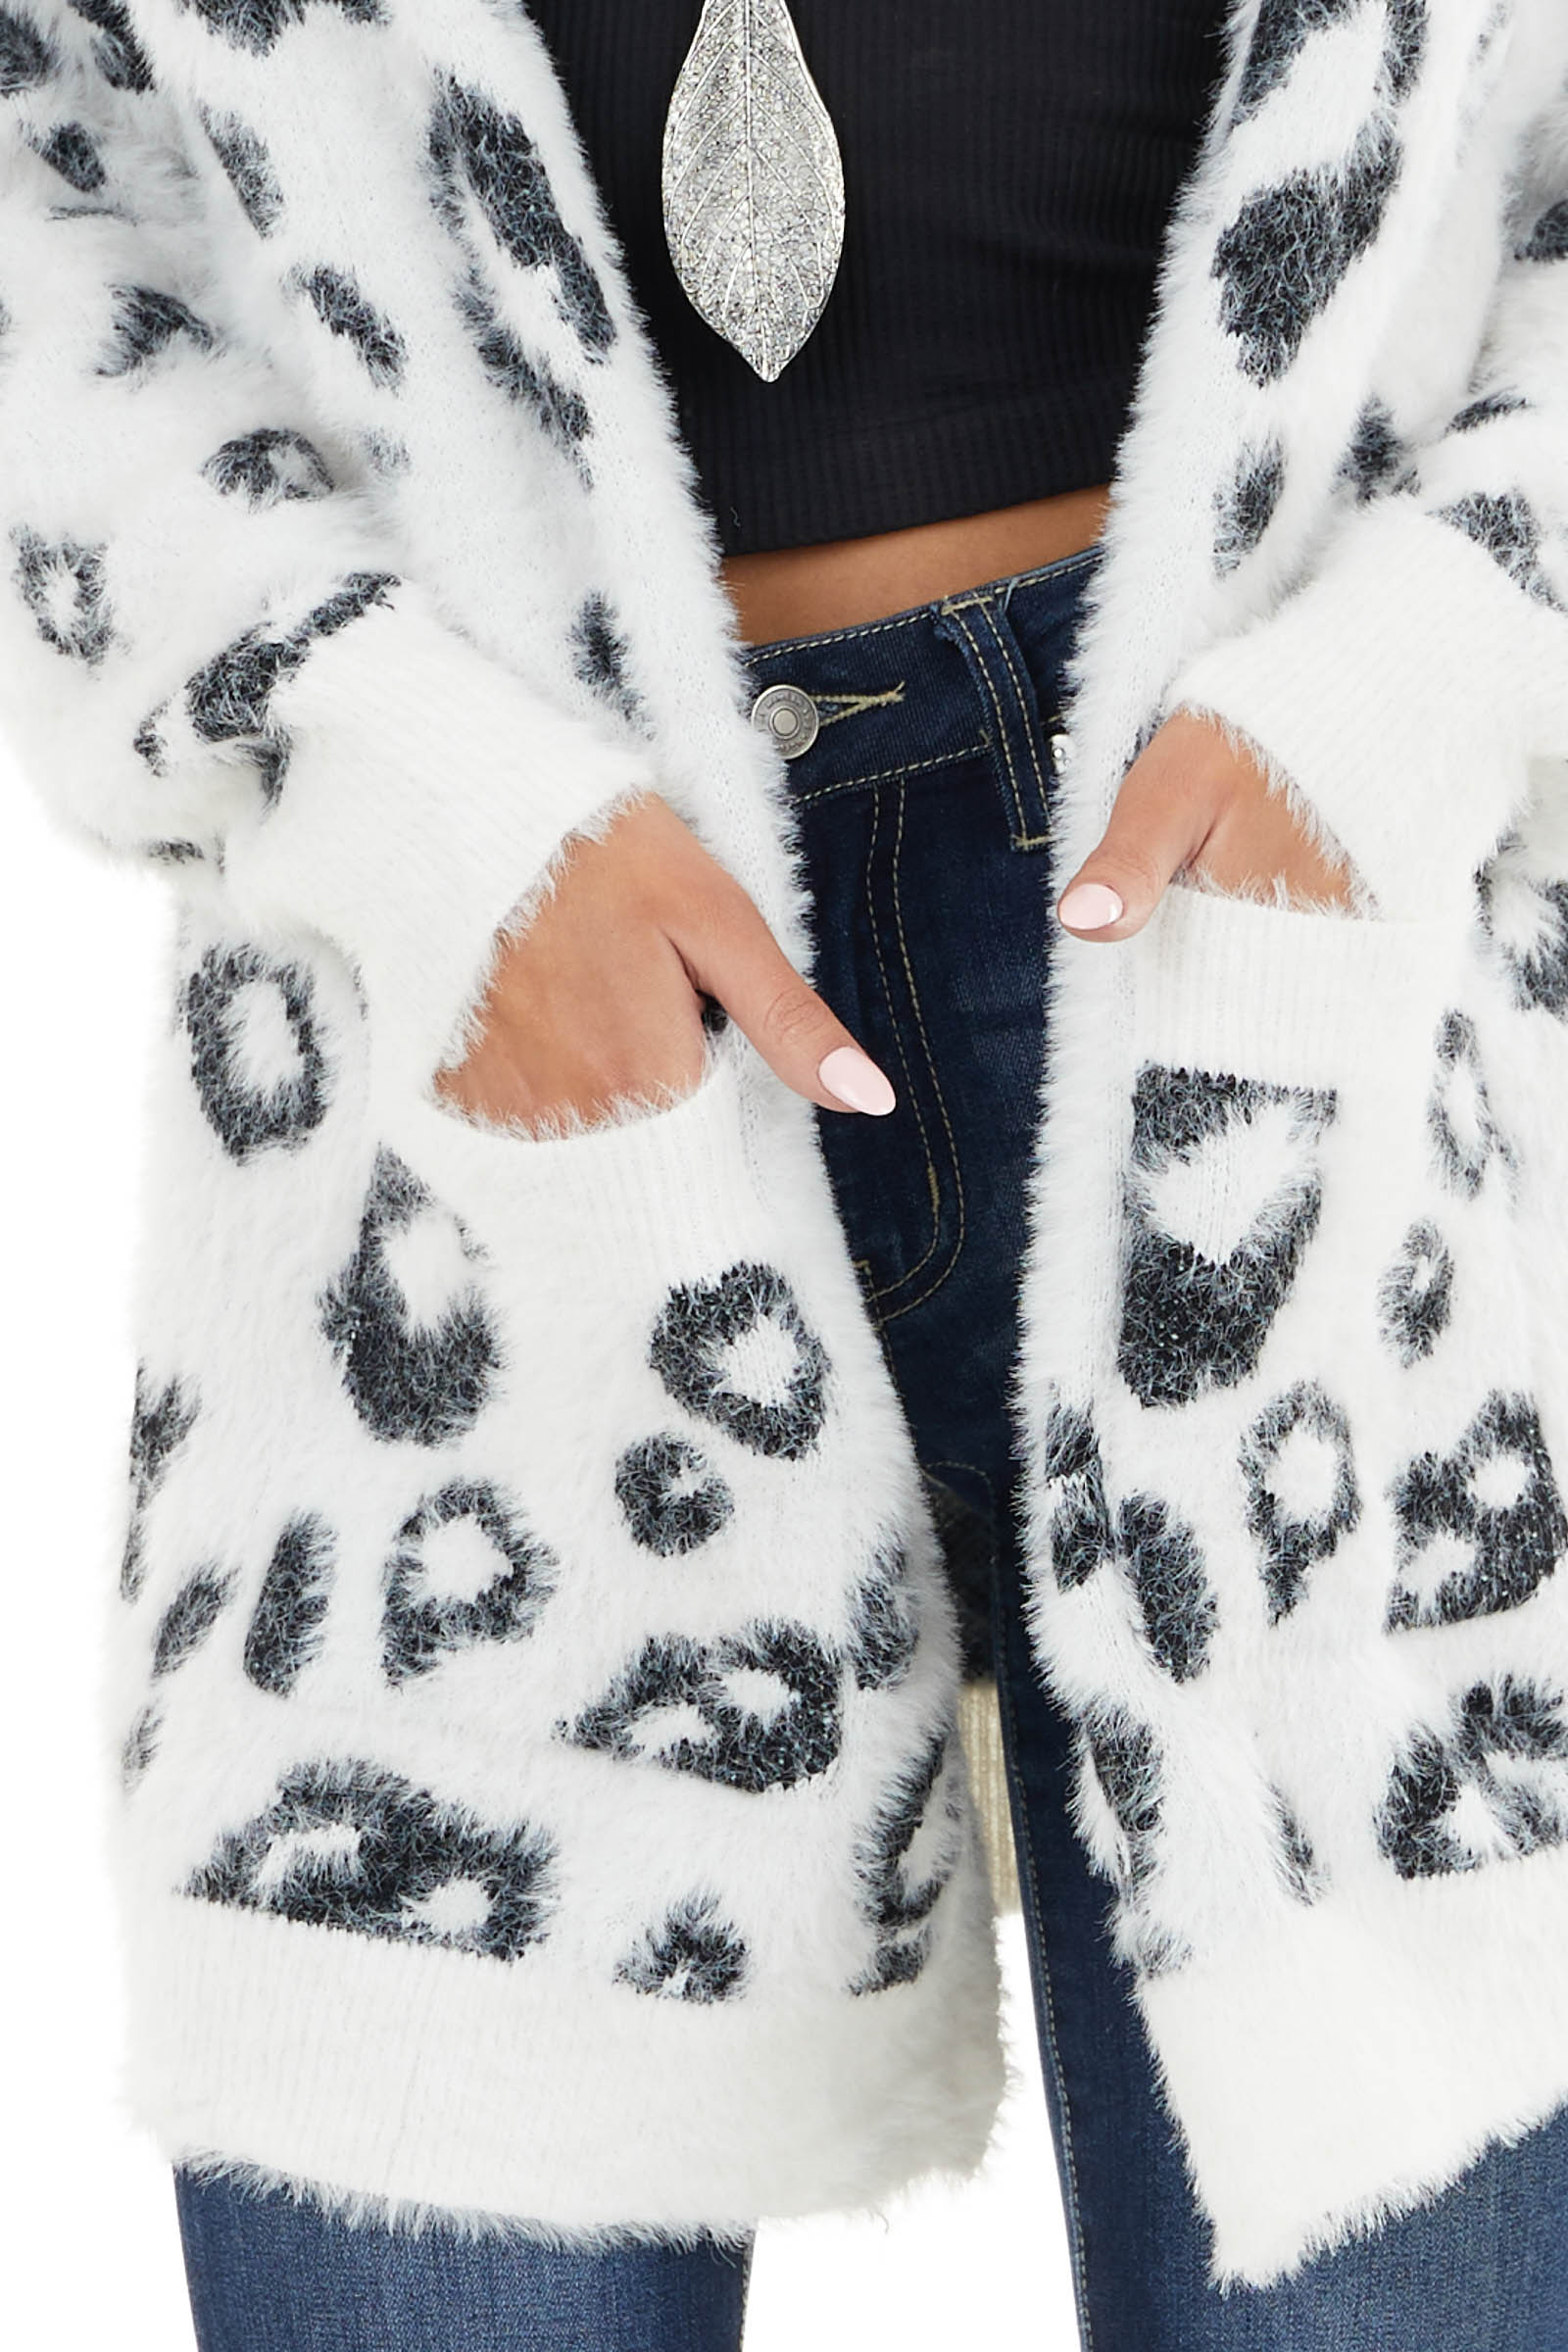 Ivory and Black Leopard Print Cardigan with Pocket Details